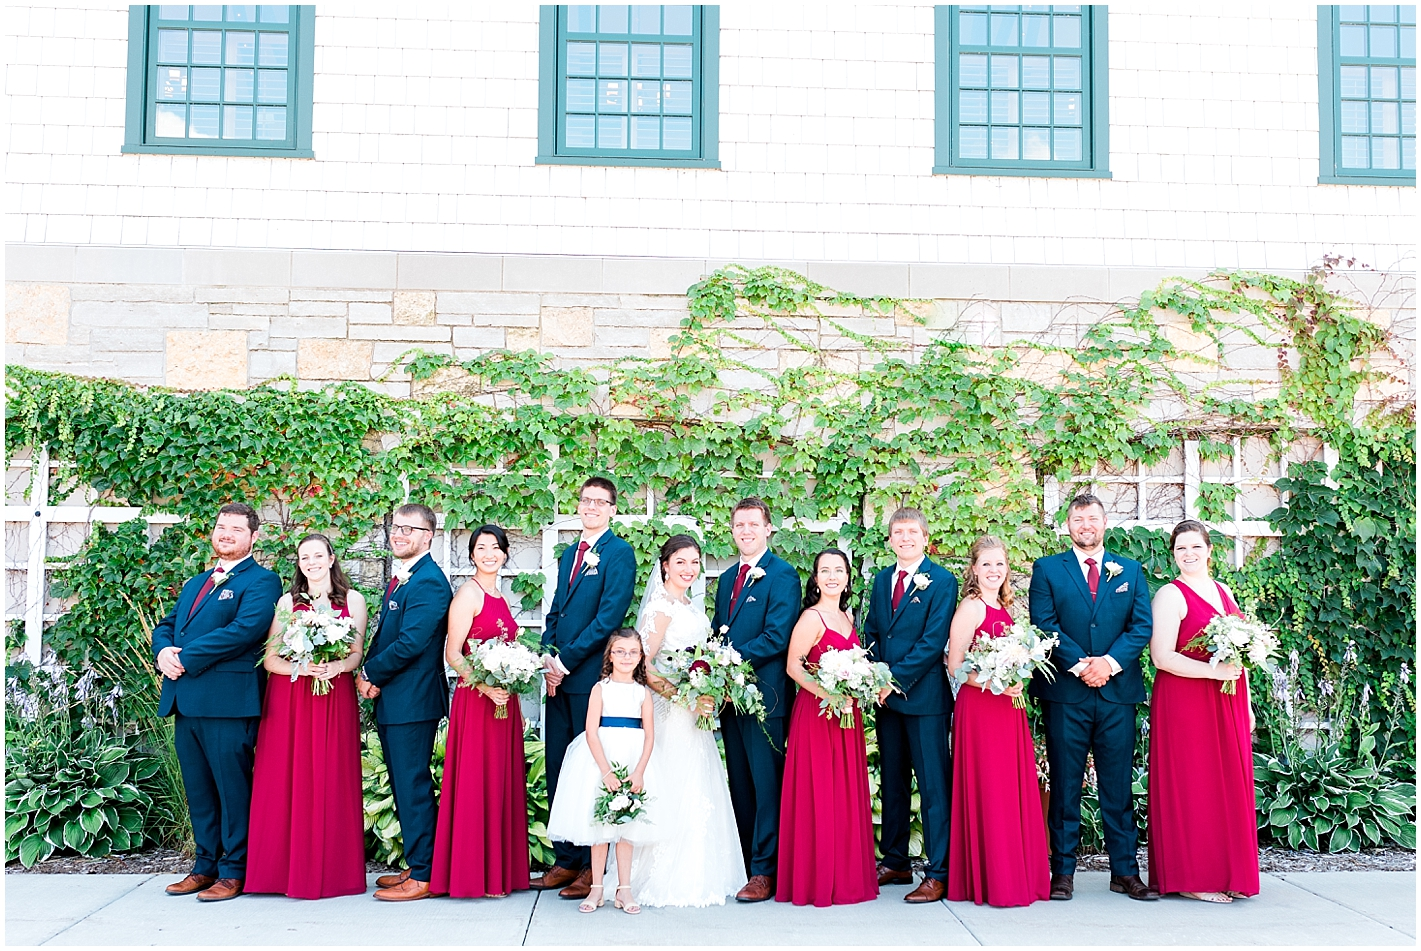 Wedding Party Formal Pose By Alyssa Parker Photography